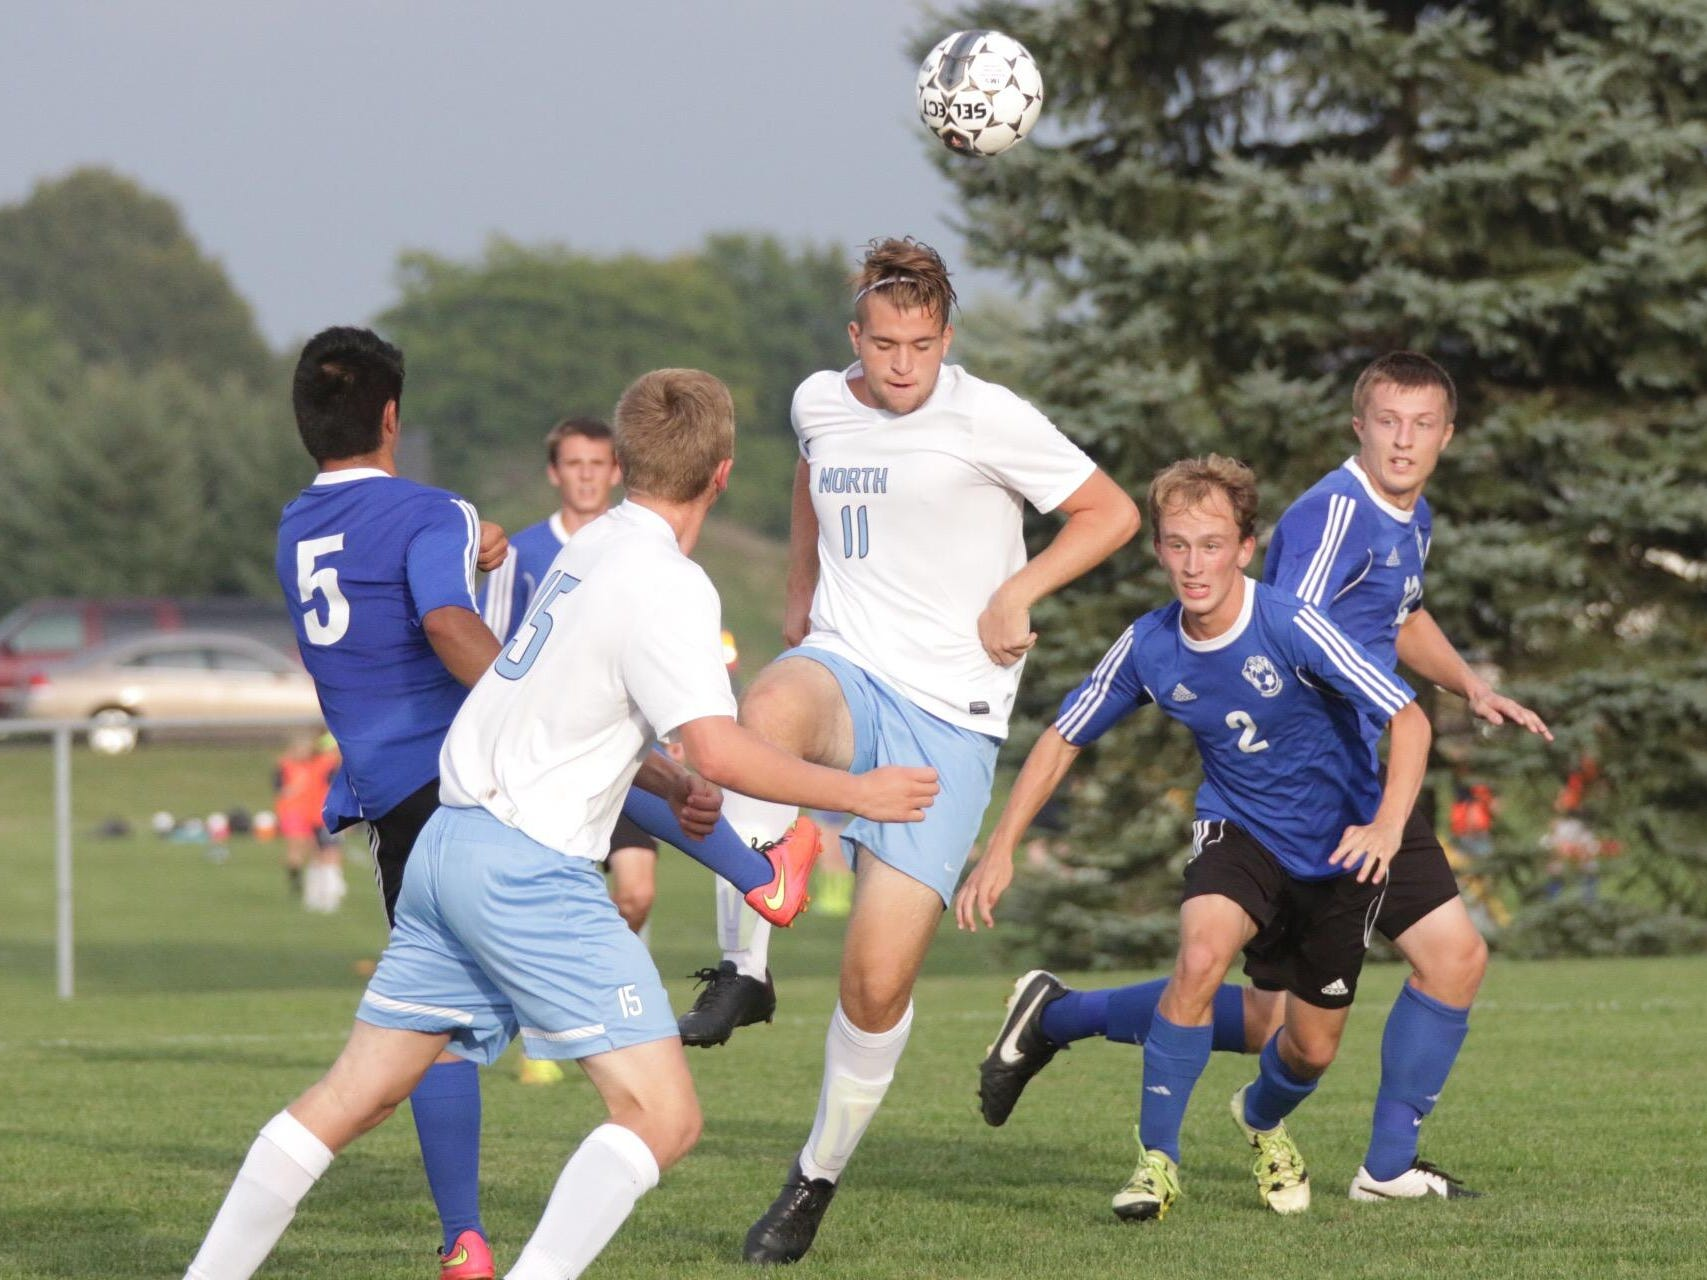 Sheboygan North's Nicolo Vitale (11) heads a ball forward during Thursday's match against Oshkosh West. Vitale had a hat trick in the Golden Raiders' 3-0 win.